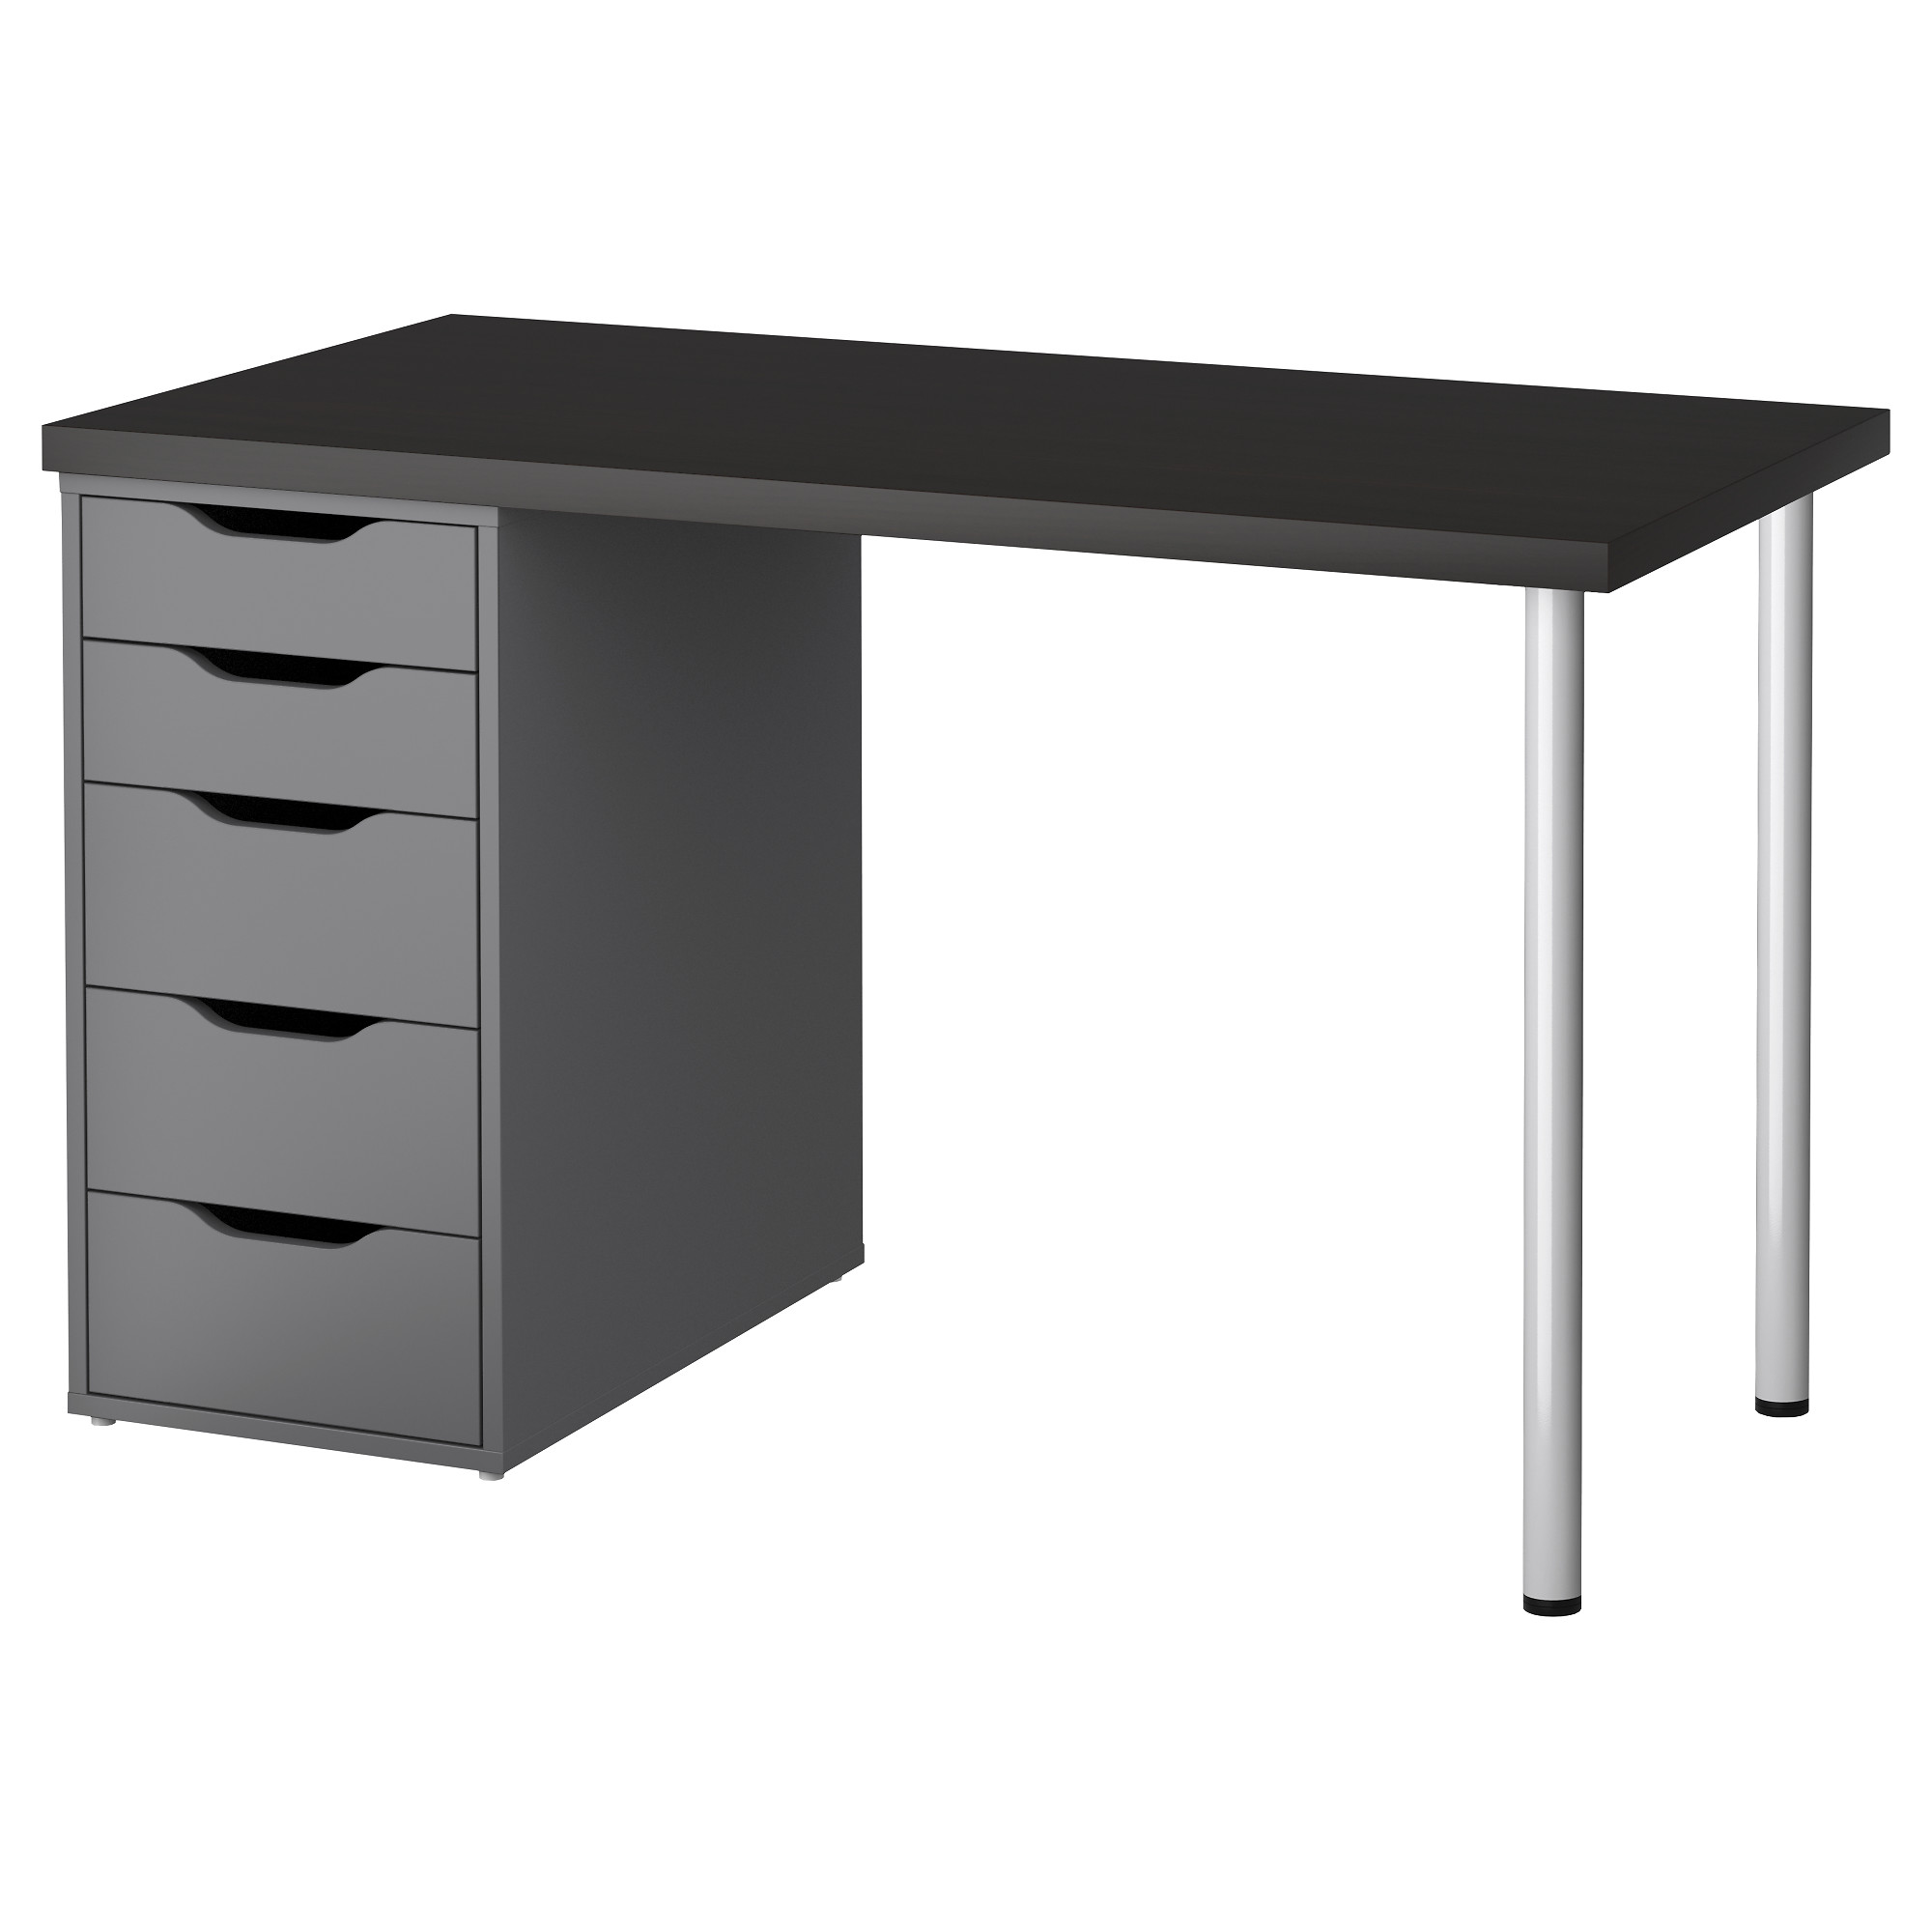 Work Bench Legs for Best Your Workspace Furniture Design: Work Bench Legs | Plastic Workbench | Menards Workbench